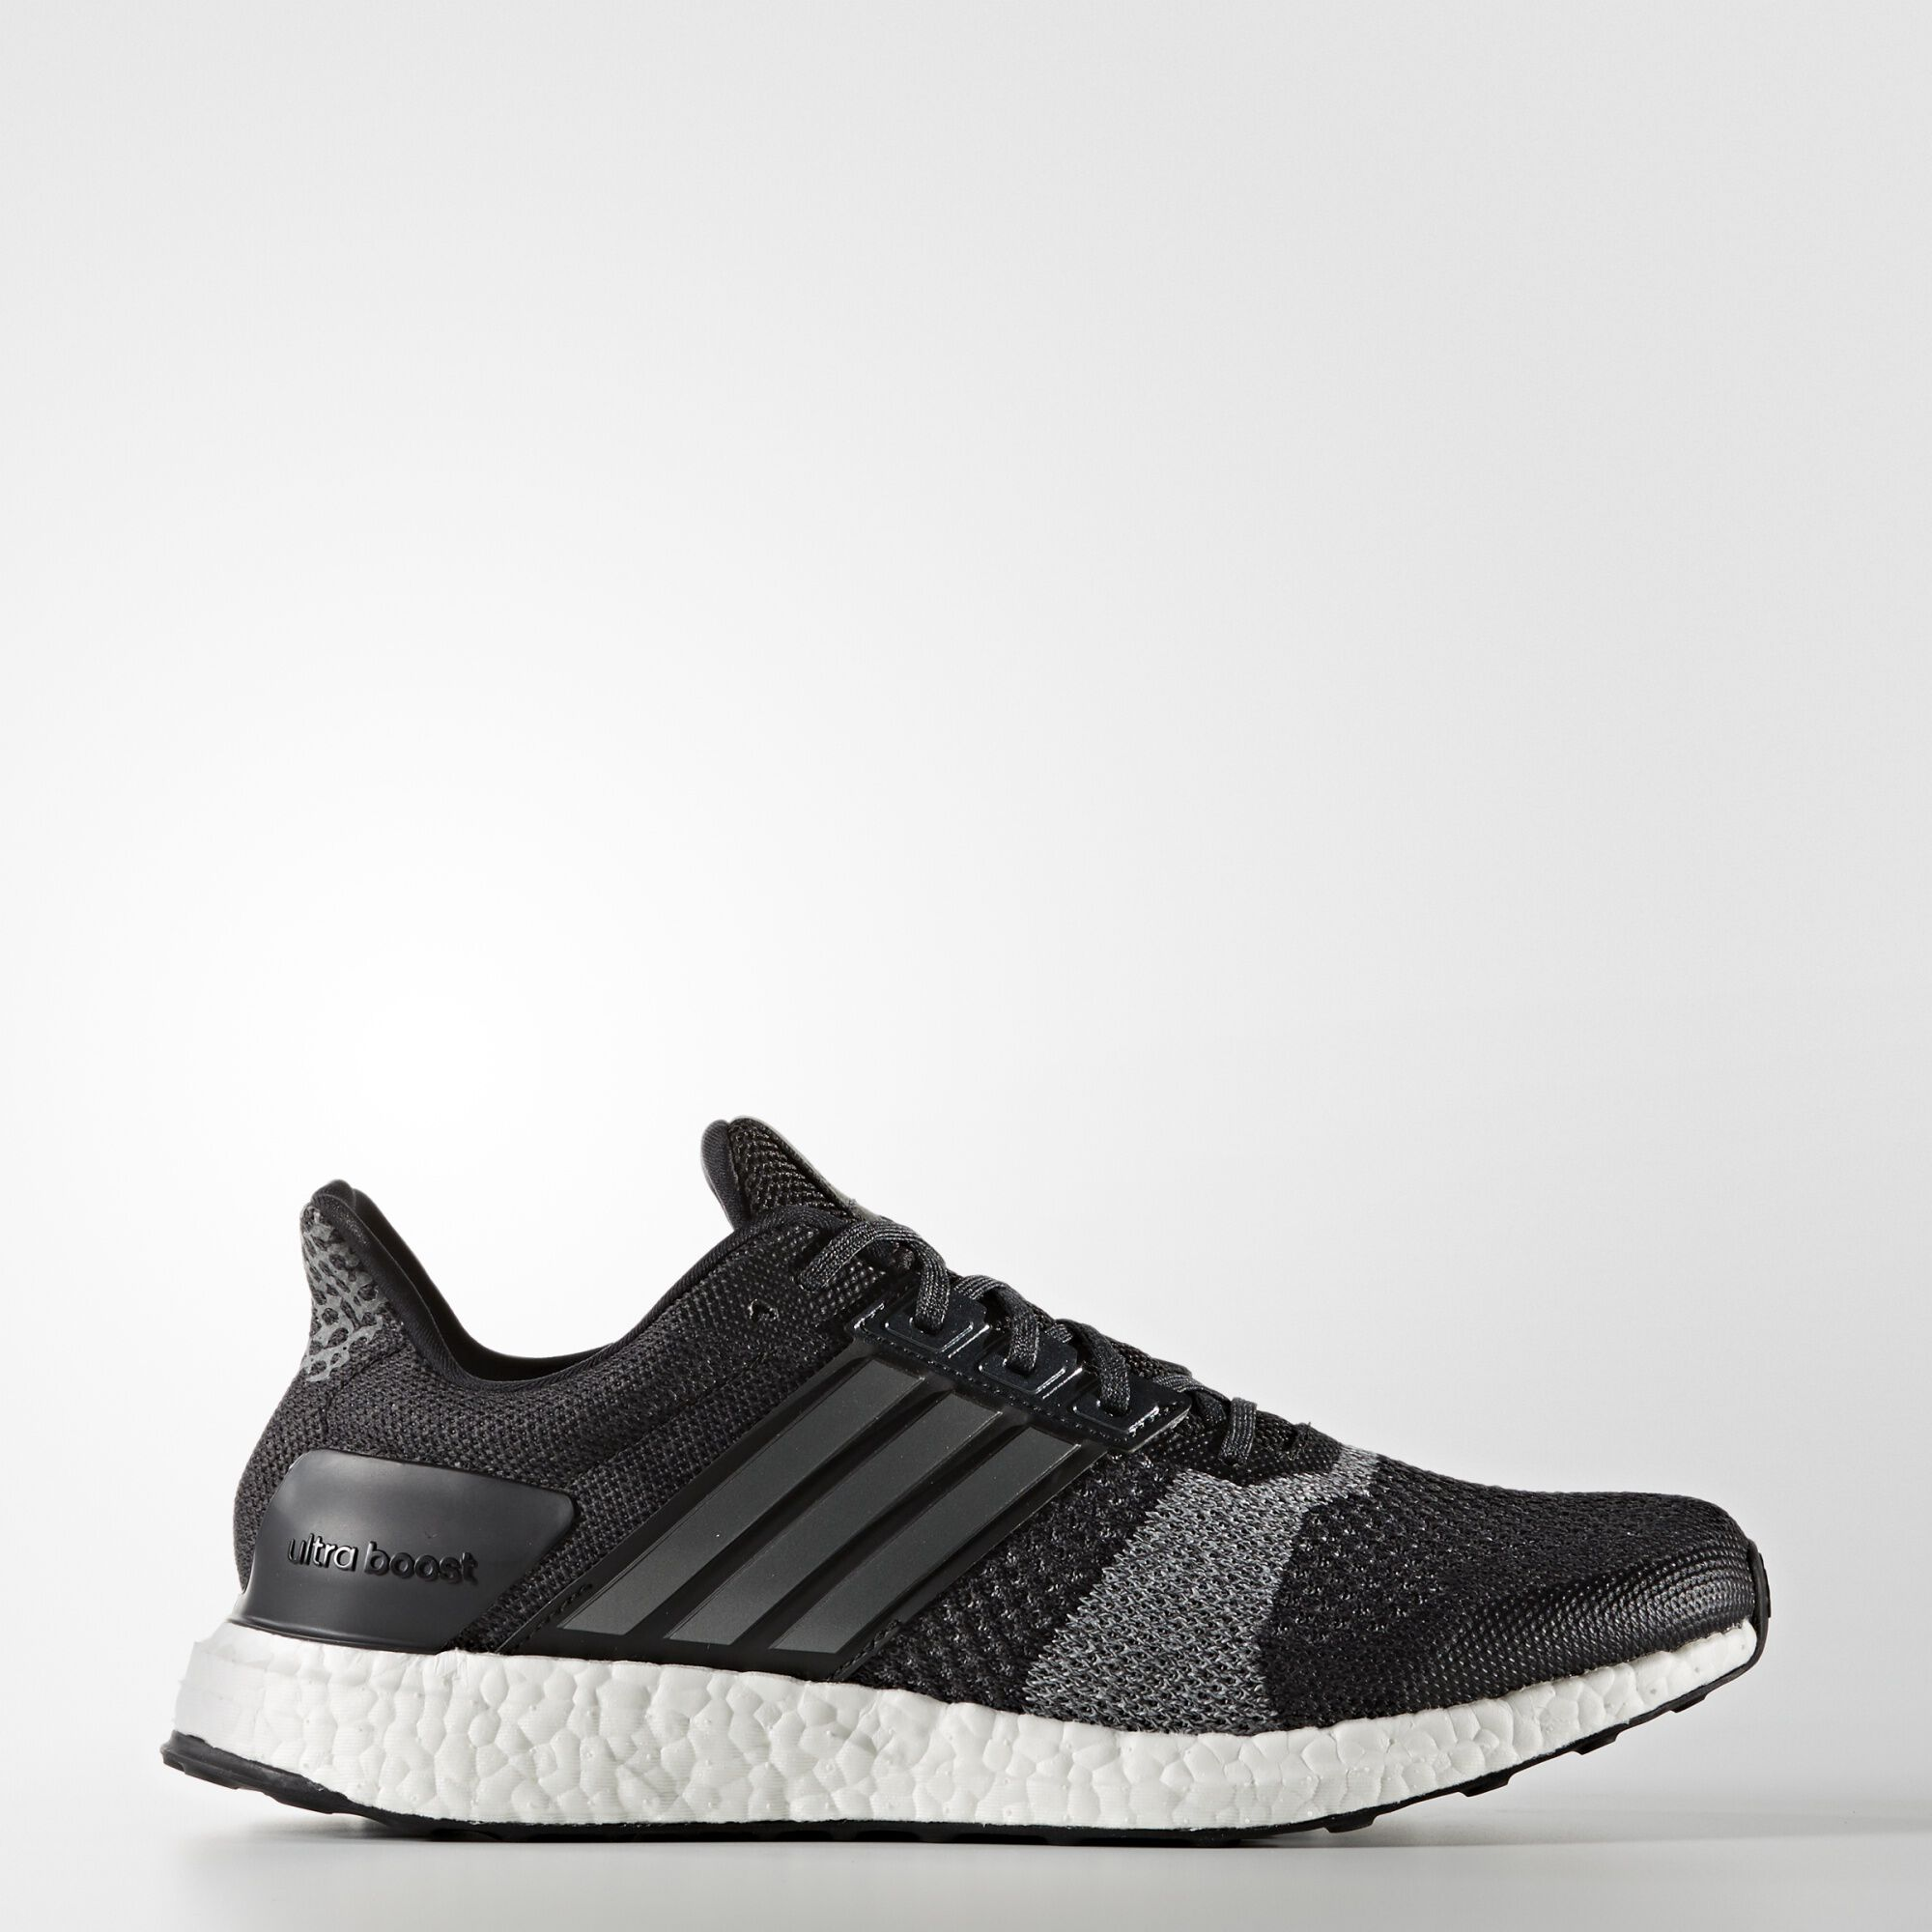 adidas ultra boost st shoes black adidas uk. Black Bedroom Furniture Sets. Home Design Ideas